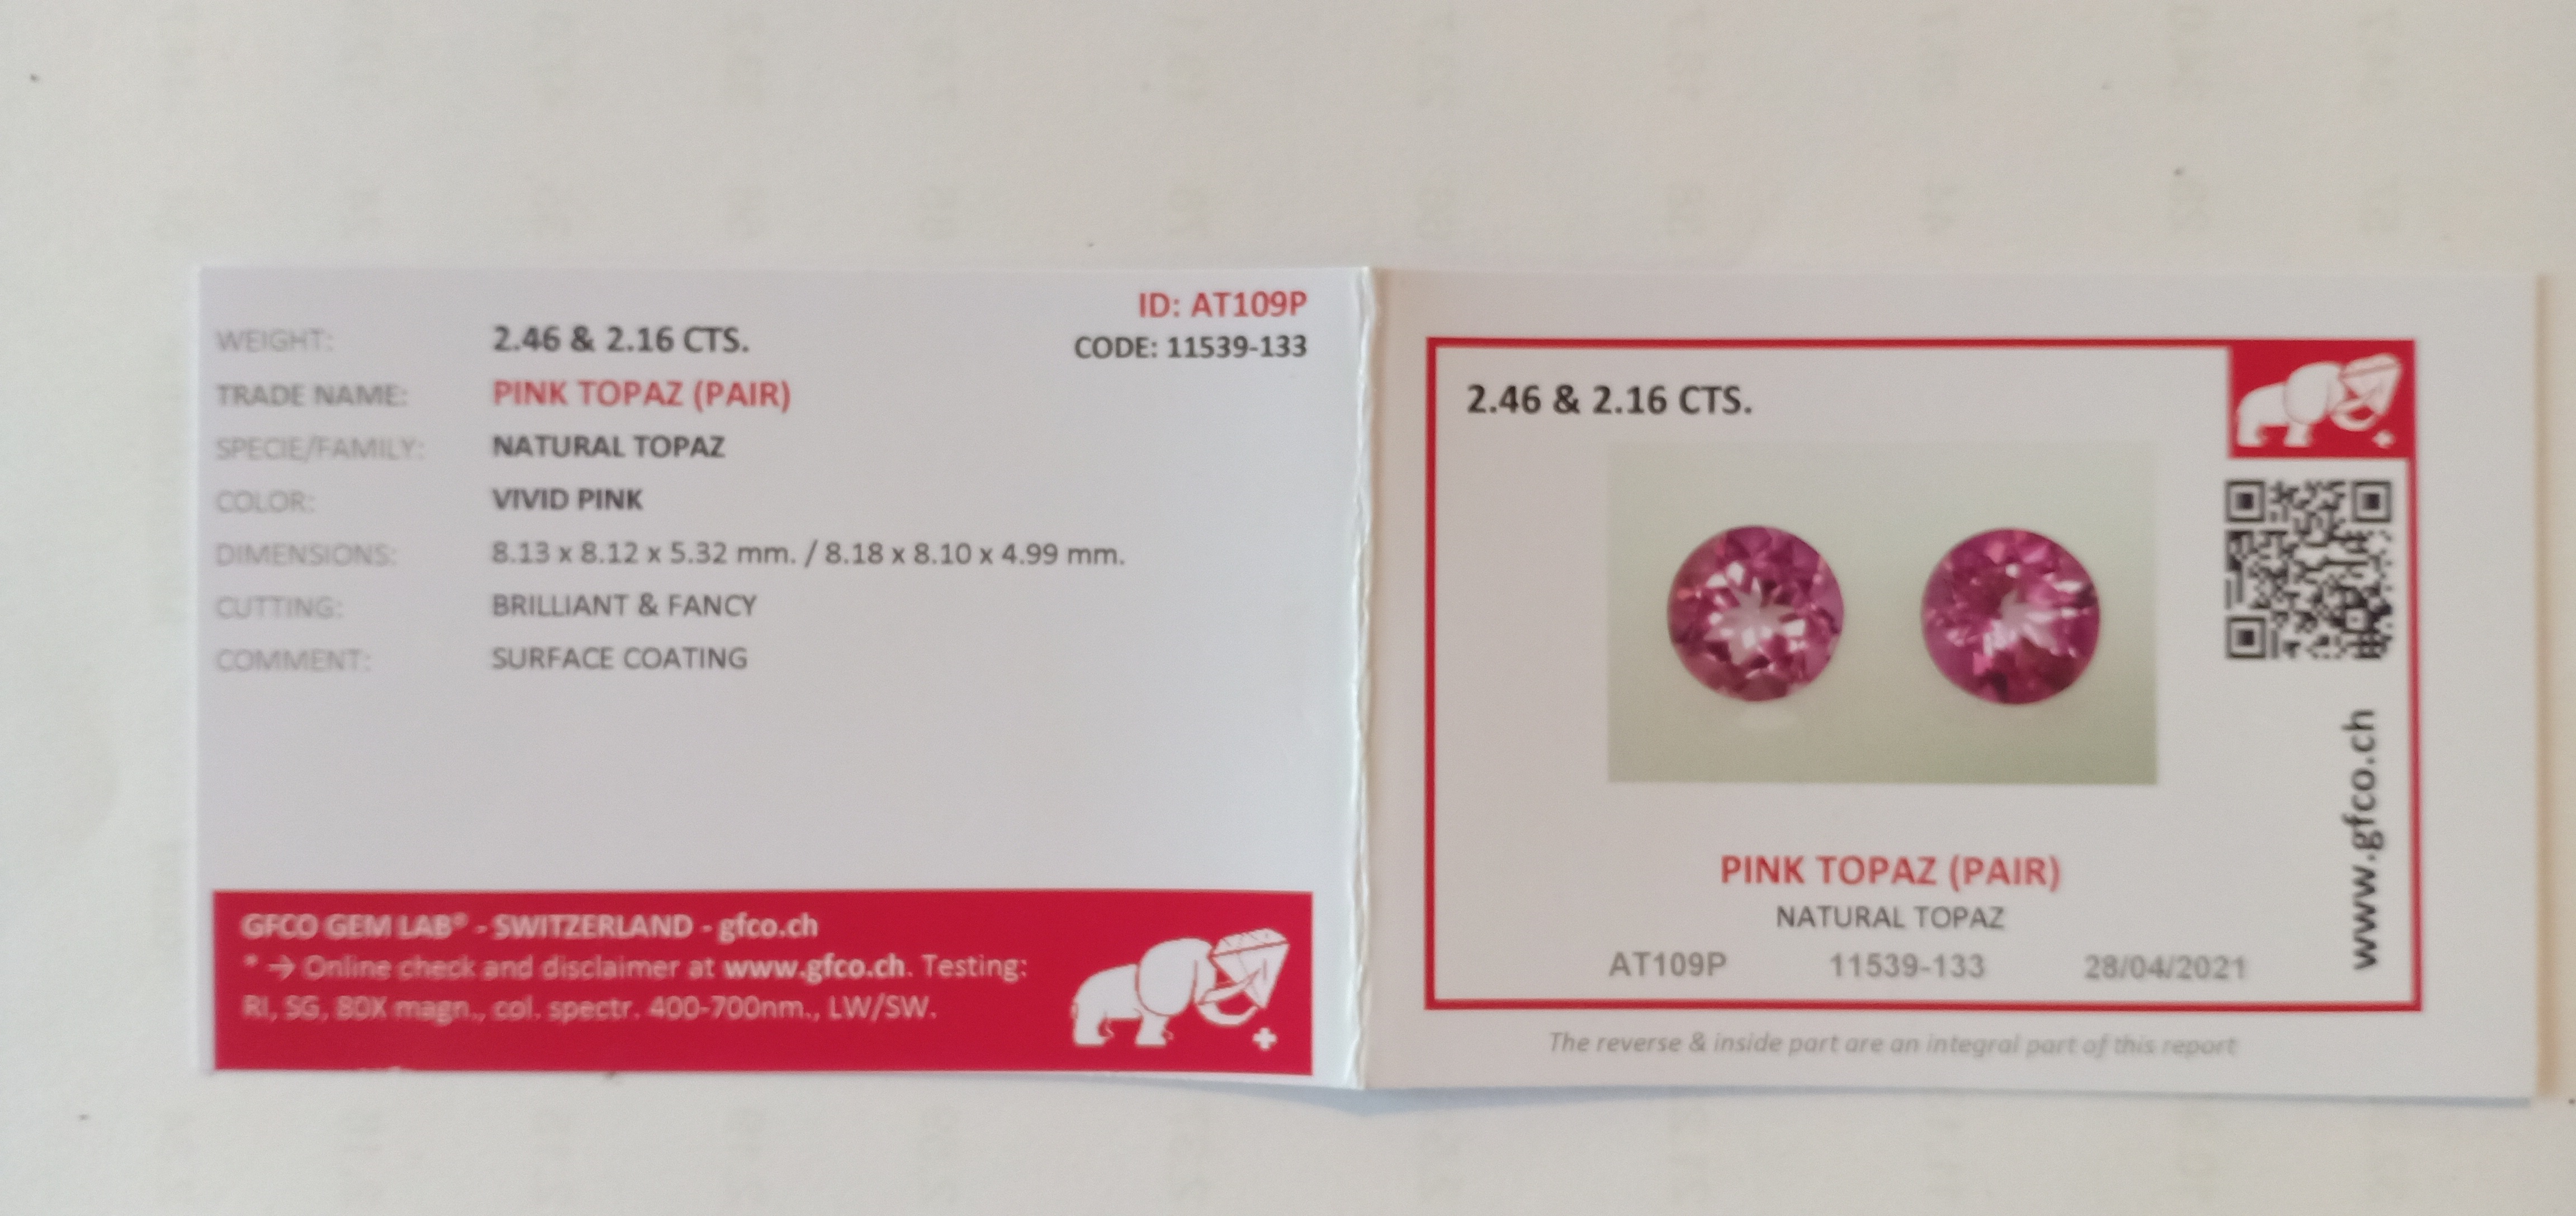 PAIR OF NATURAL PINK TOPAZES - BRAZIL - 4.62 Cts - Certificate GFCO Swiss Laboratory - Image 4 of 4